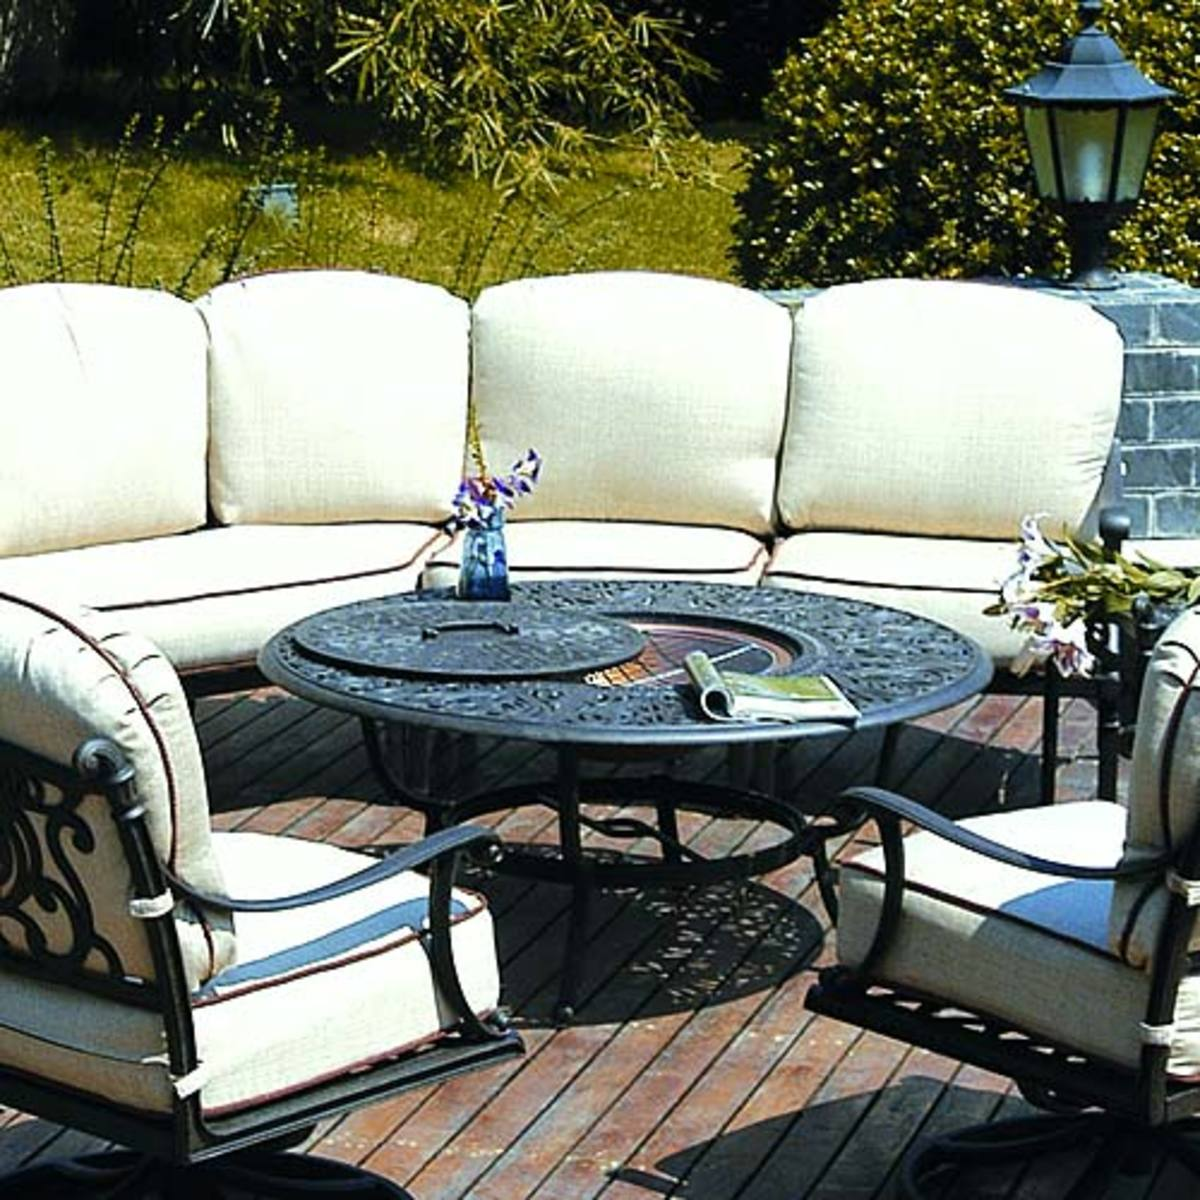 Convertible Outdoor Gas Fire Pit Table